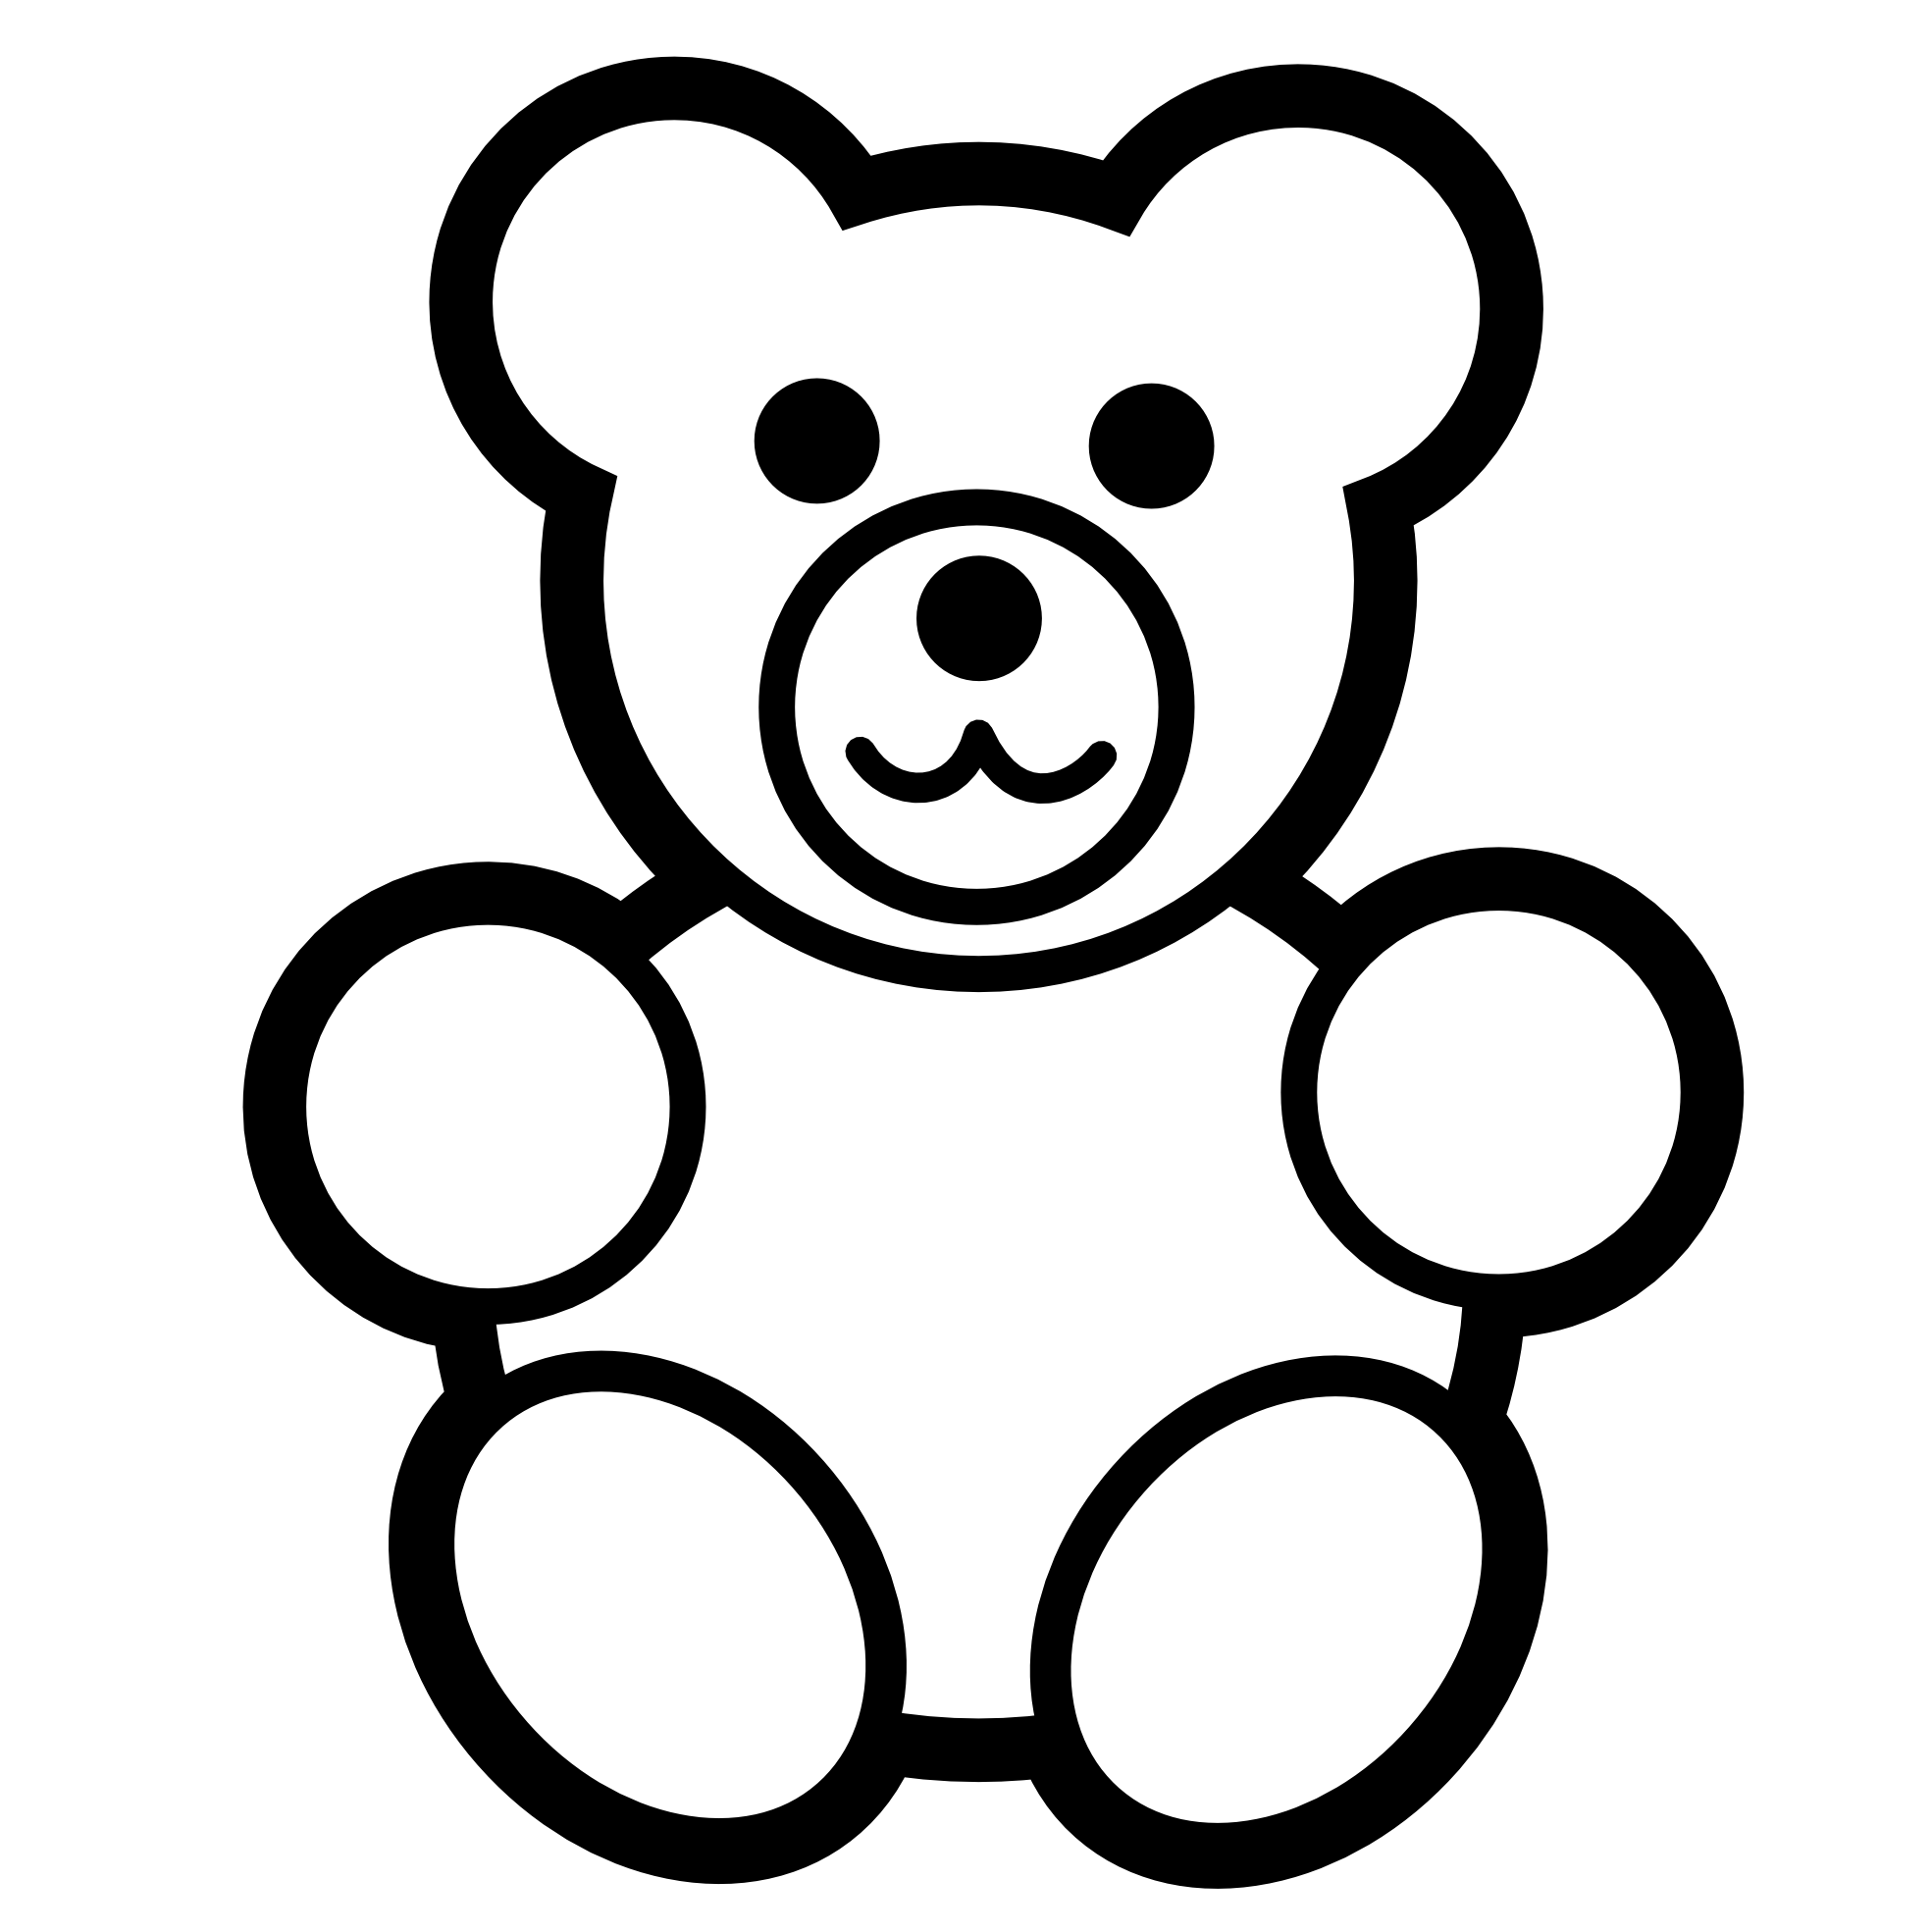 1969x1969 Teddy Bear Black And White Teddy Bear Clipart Black And White Free